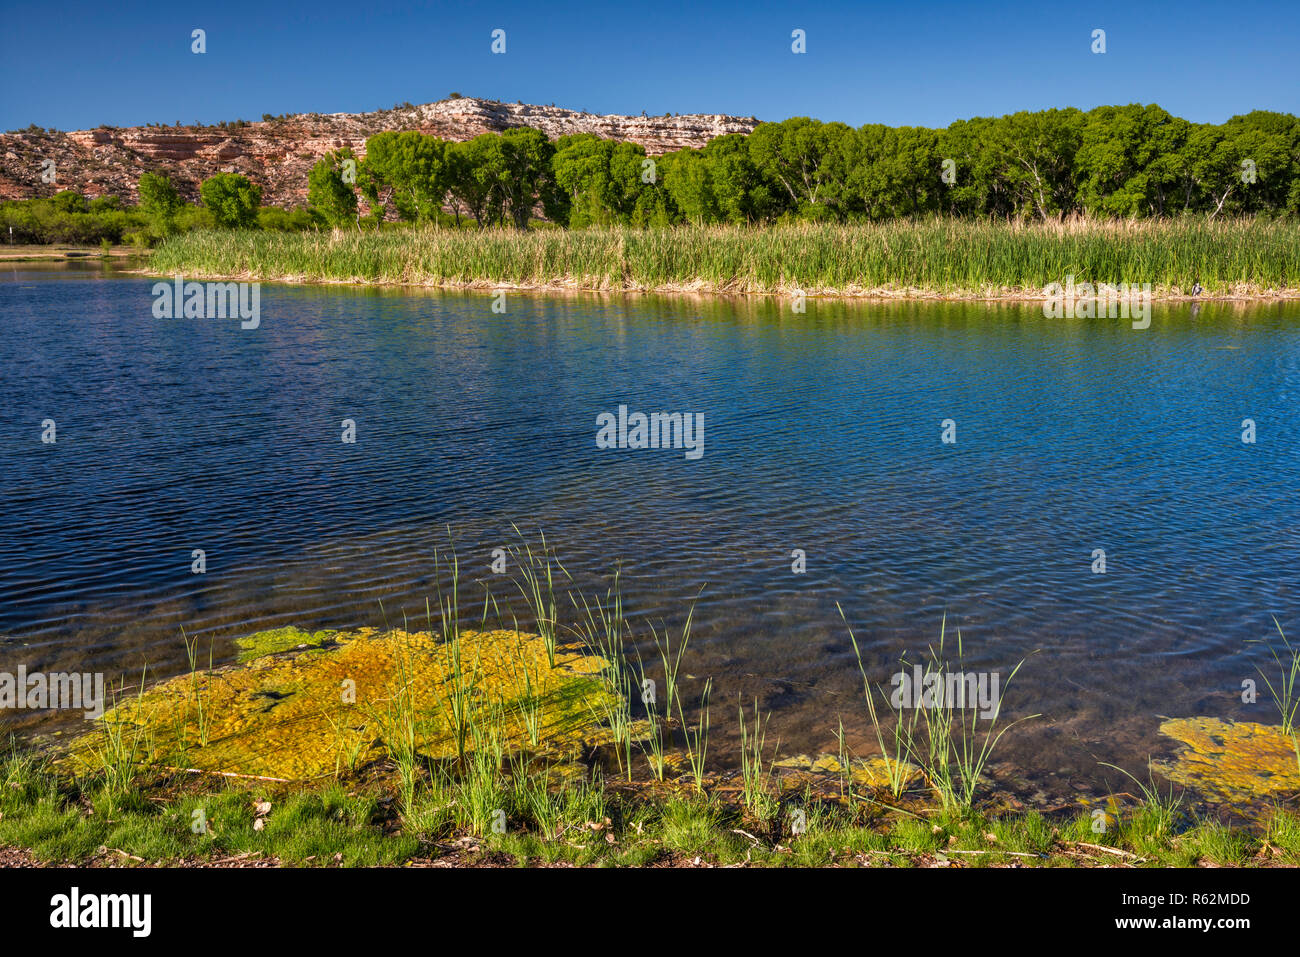 Lagoon at riparian zone in Verde River Valley, Dead Horse Ranch State Park, near Cottonwood, Arizona, USA - Stock Image